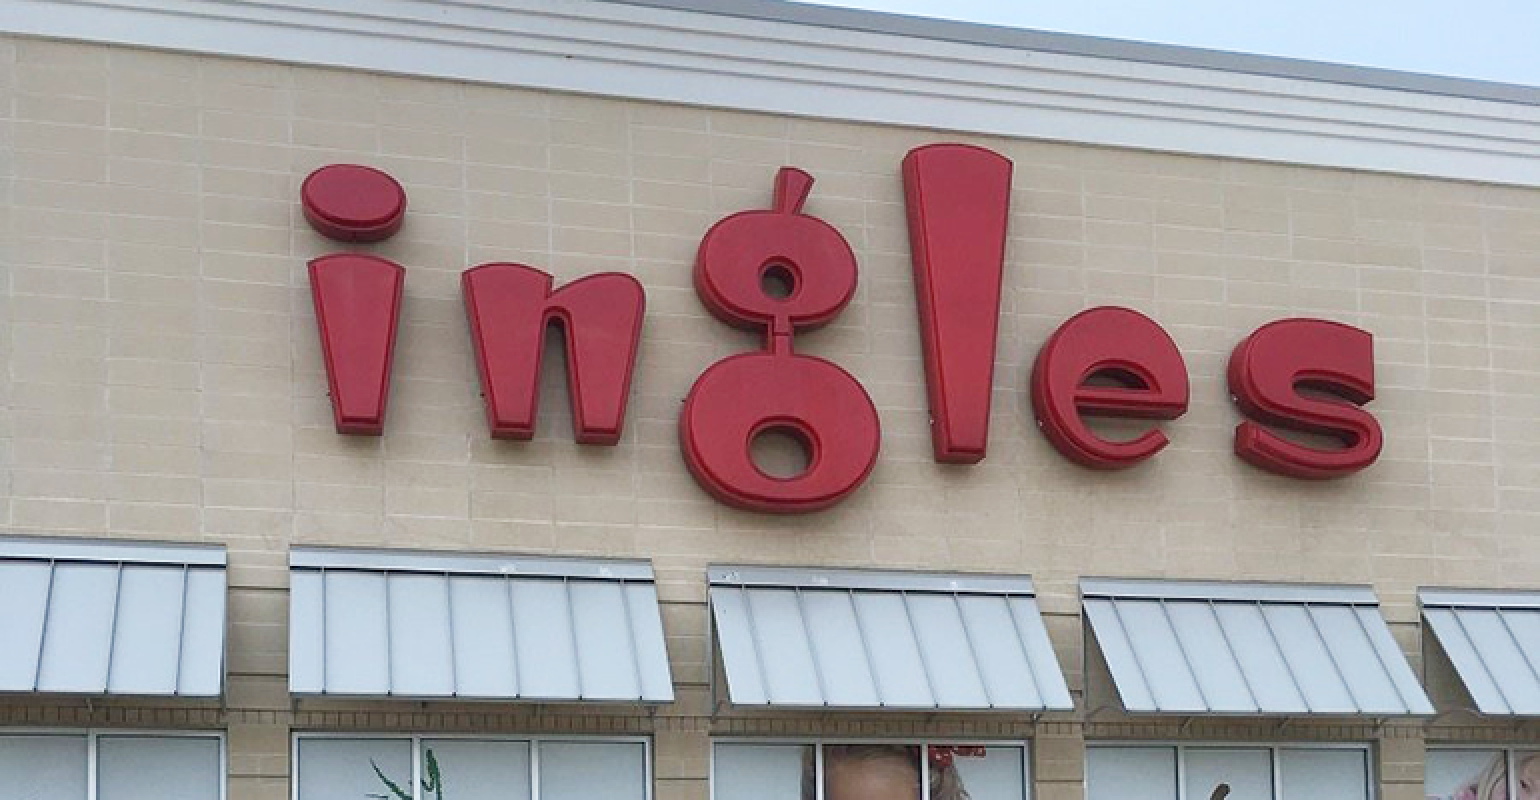 Ingles Markets to hire over 5,000 workers | Supermarket News